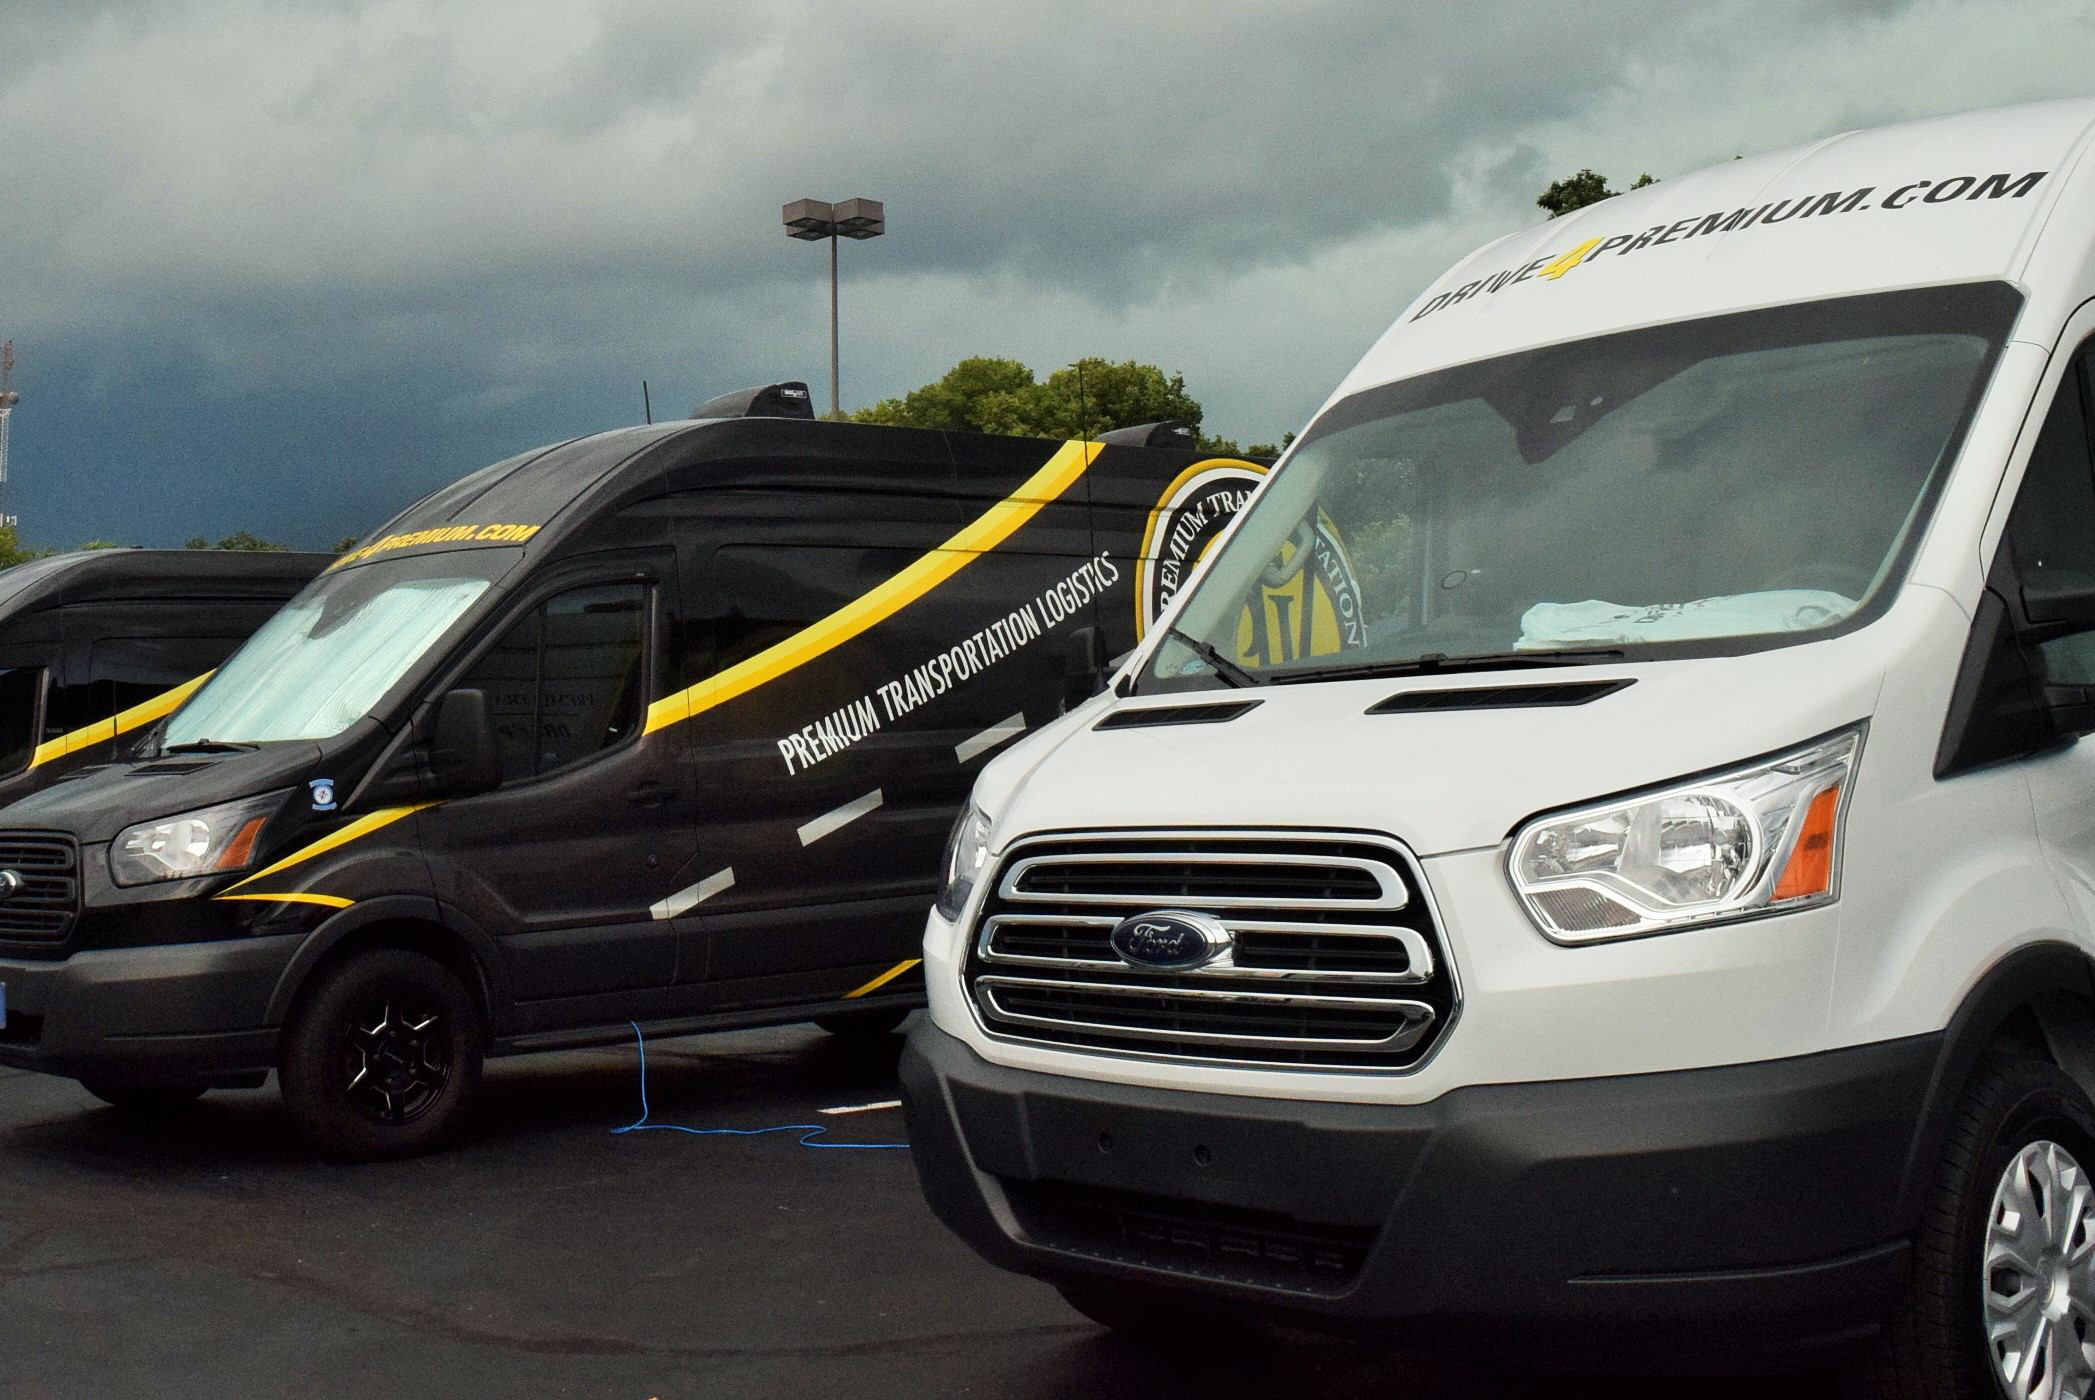 Cargo van hauling: Operating with authority, and the 'multicarrier